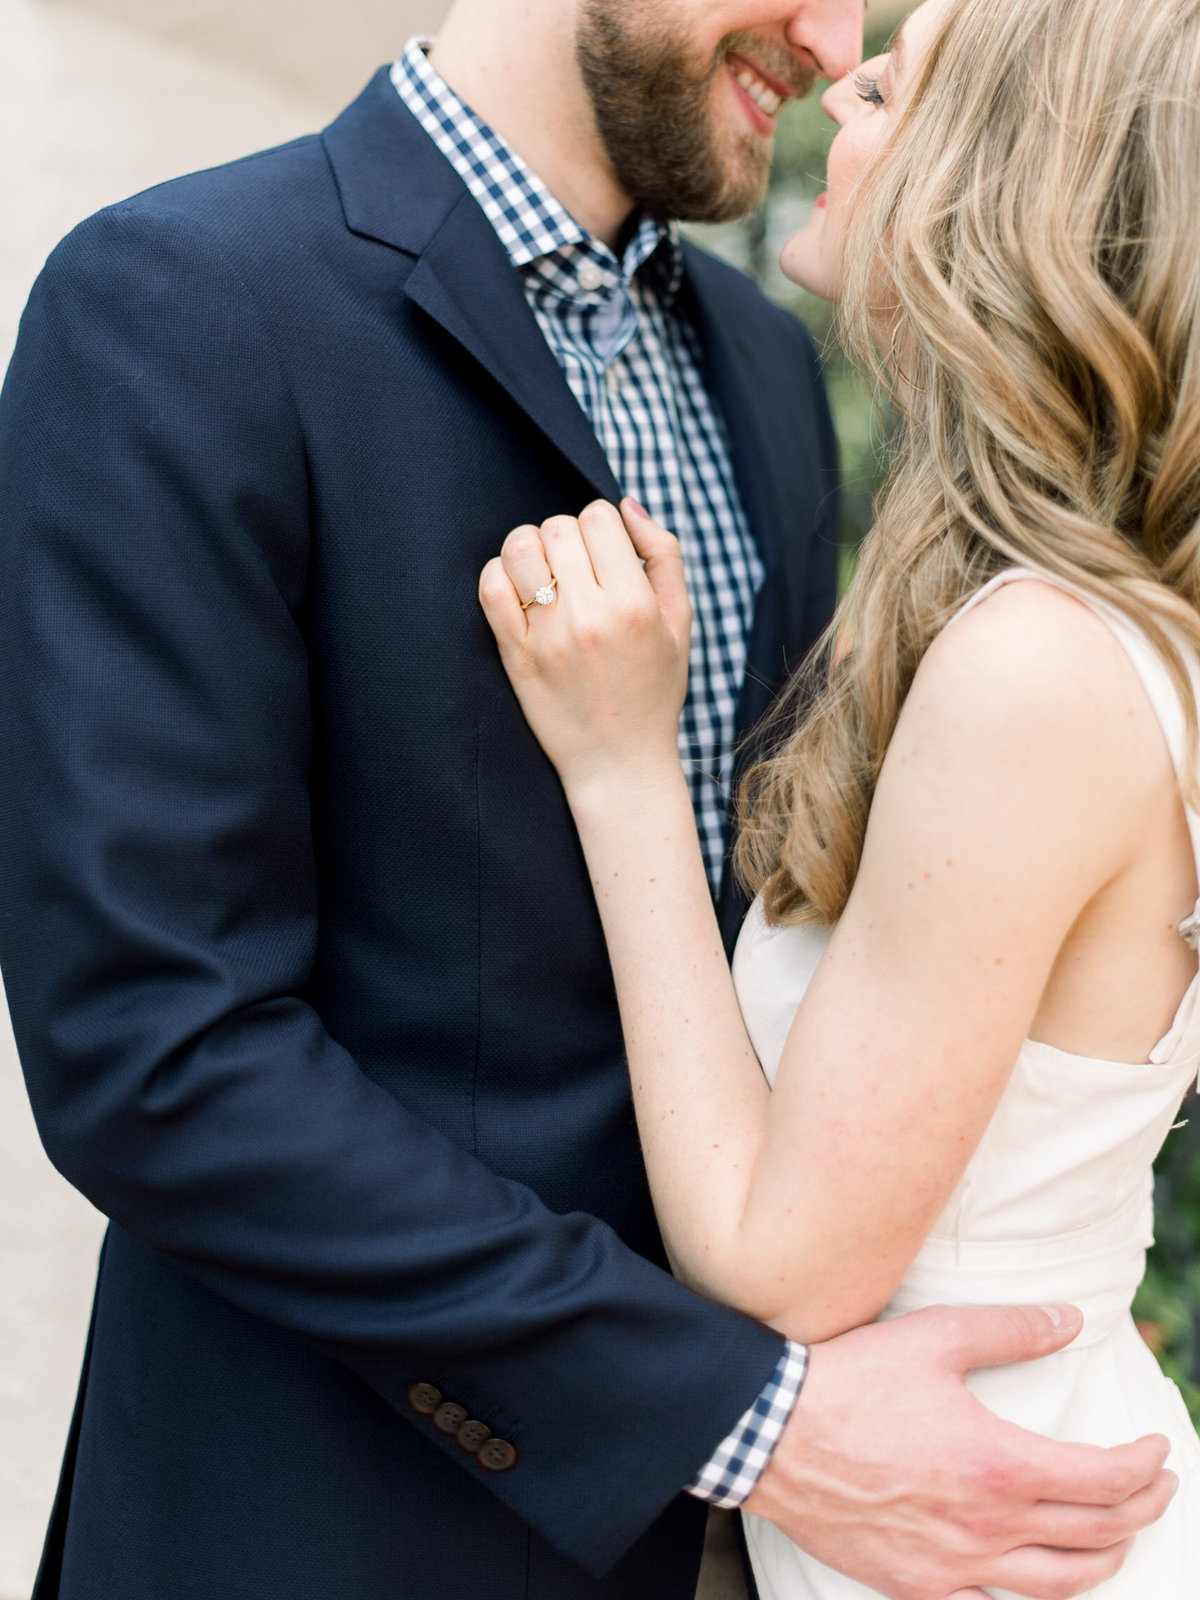 Courtney Hanson Photography - Dallas Spring Engagement Photos at Dallas Arboretum-2702